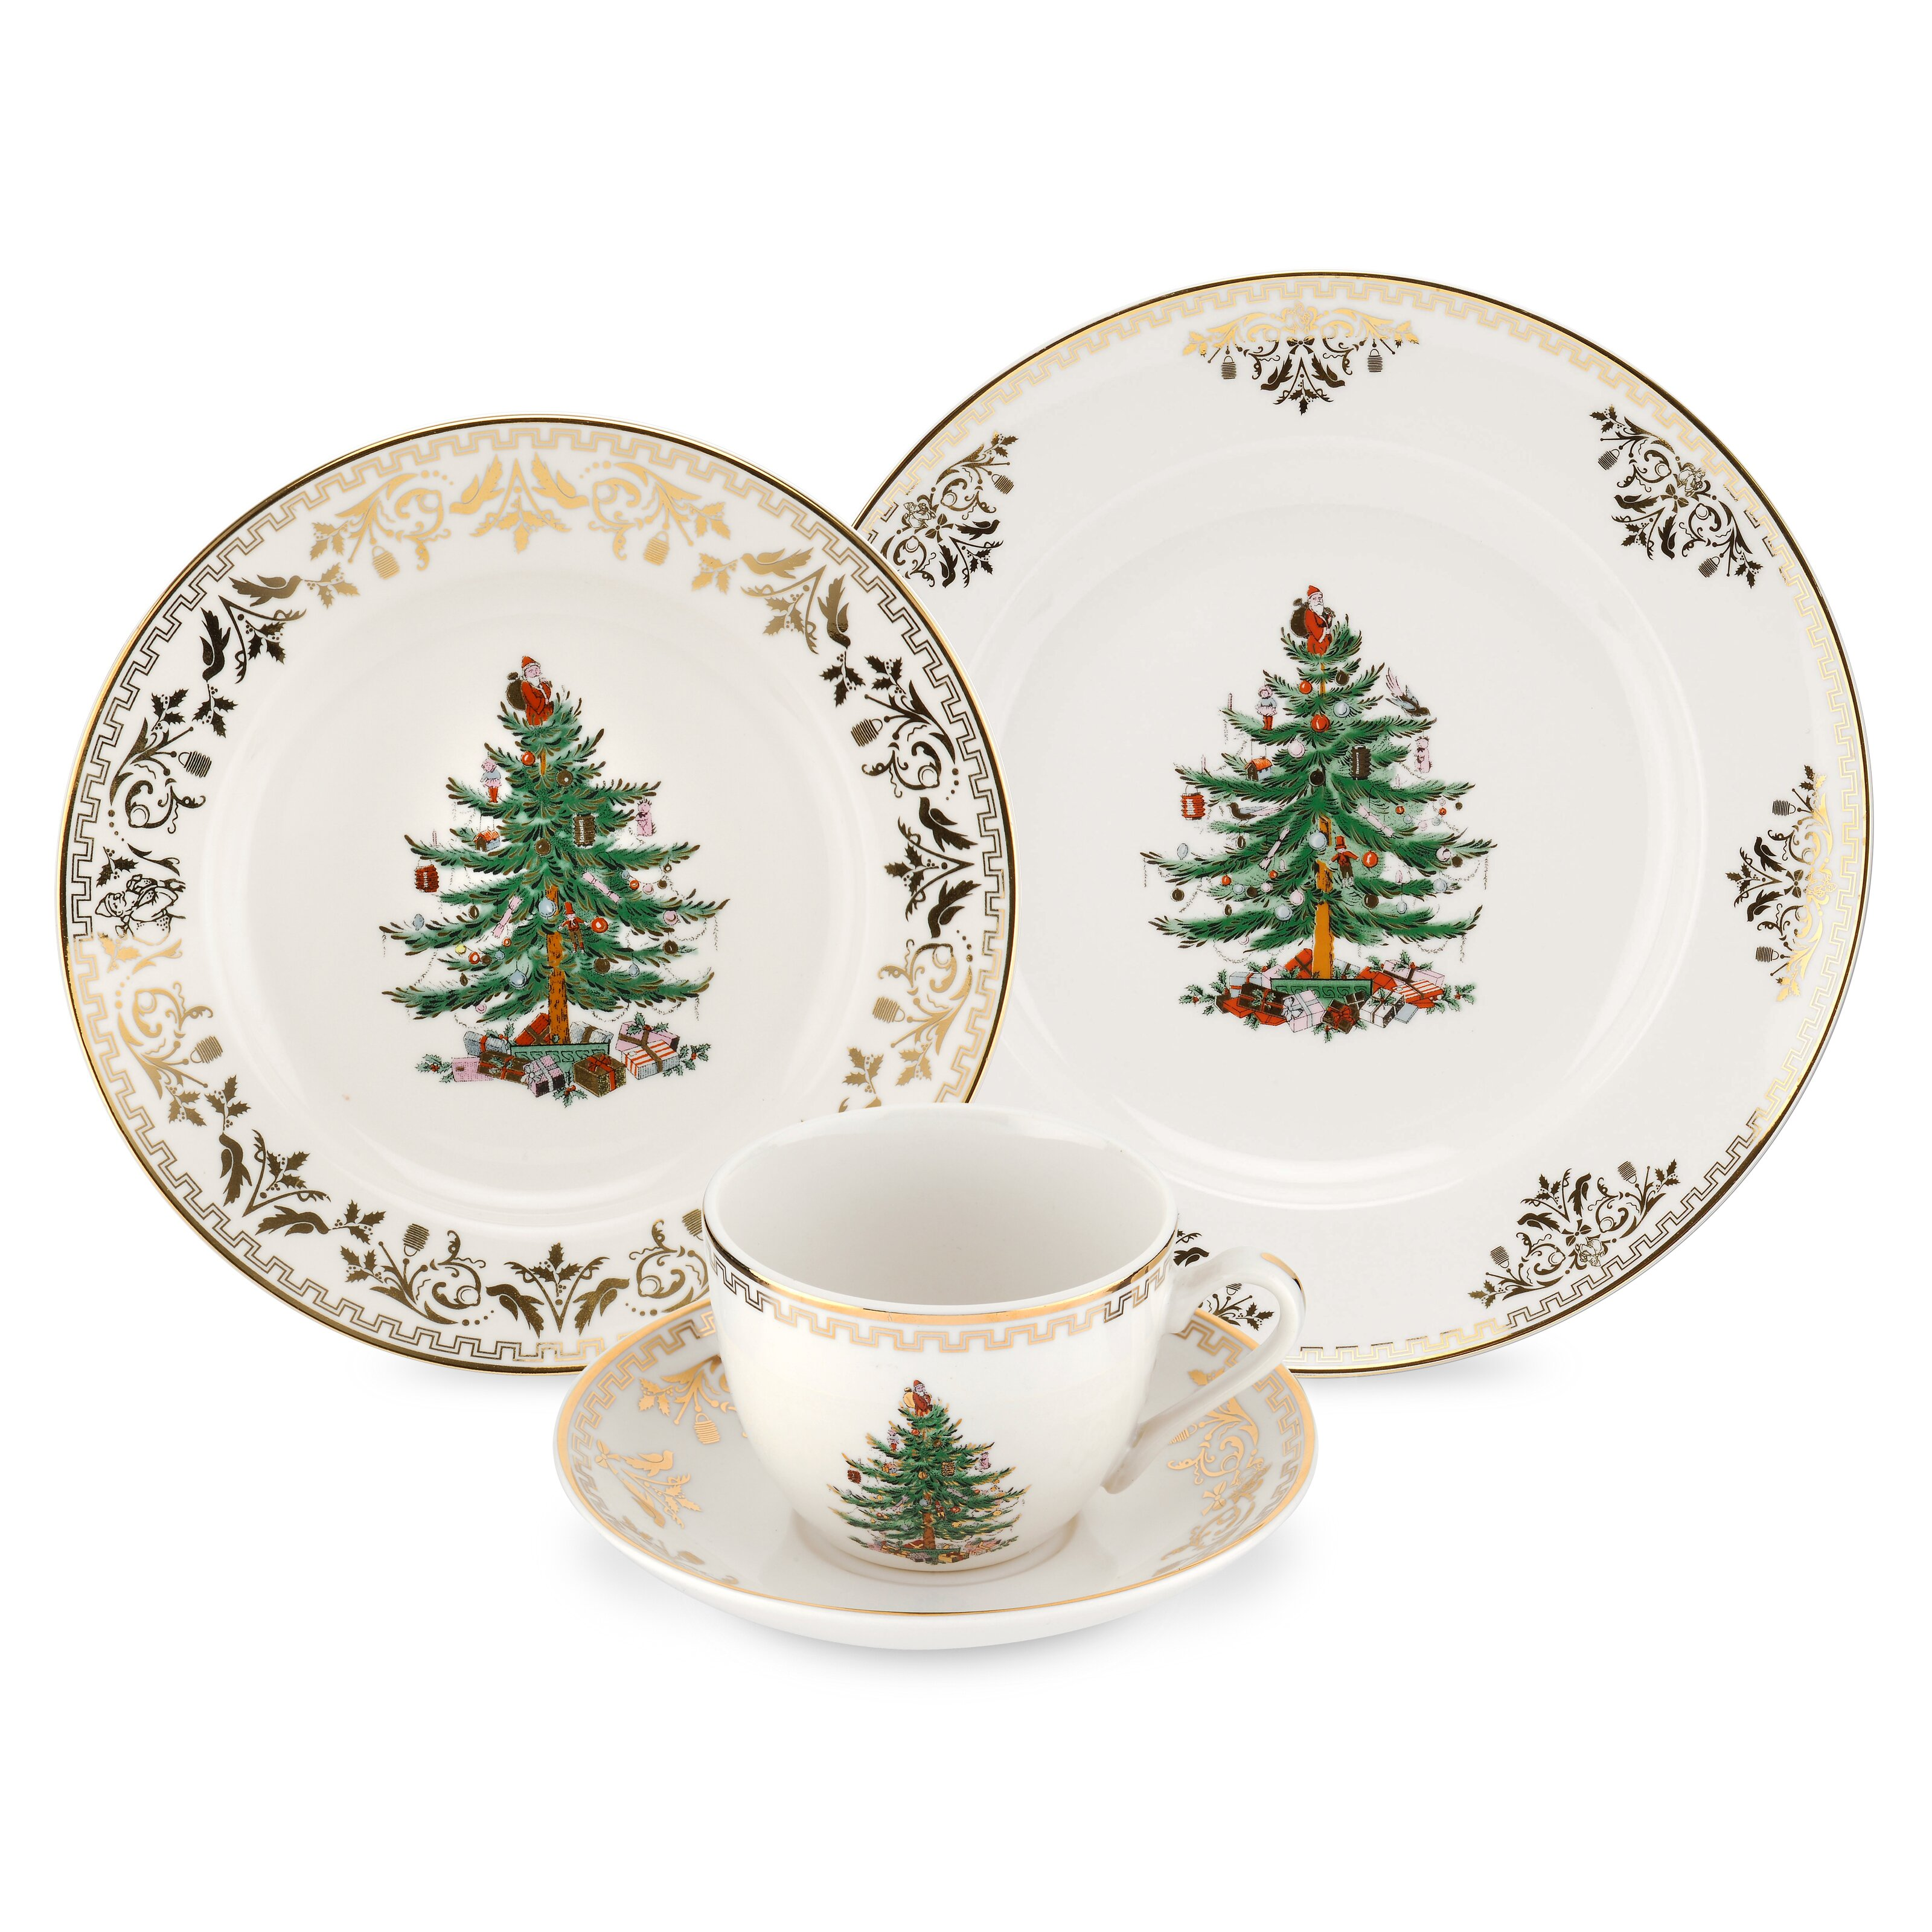 Spode Christmas Tree Gold 4 Piece Place Setting Amp Reviews